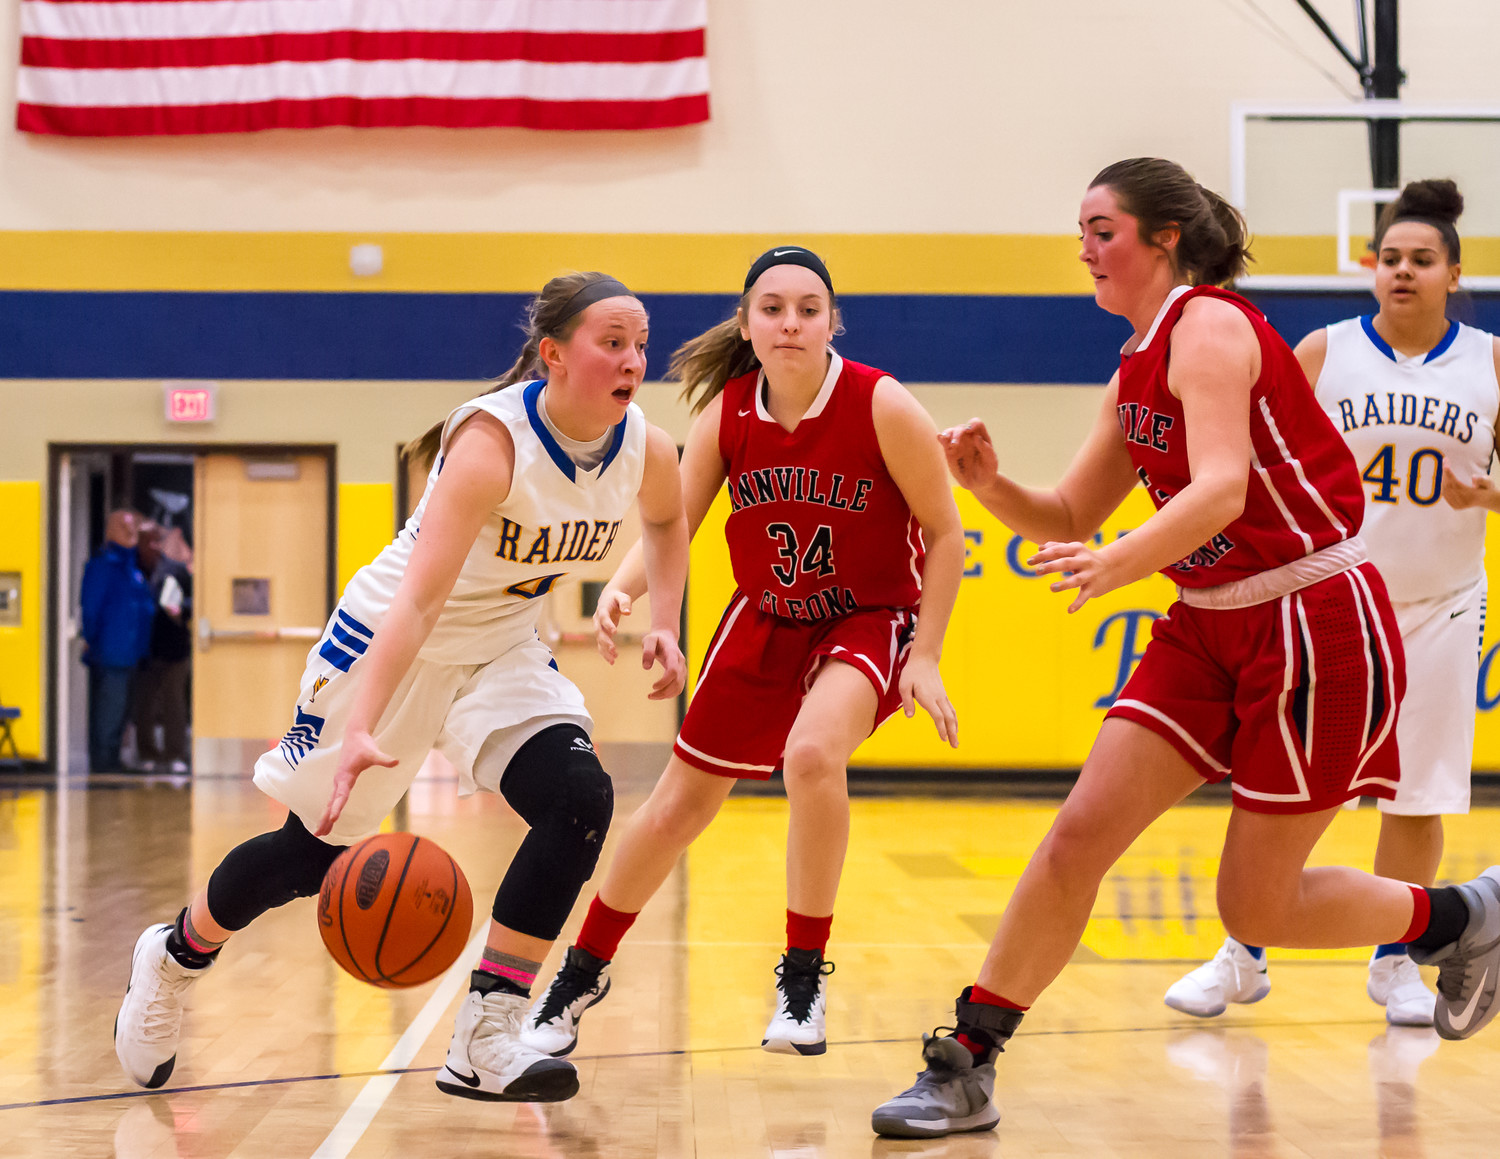 Sophomore Kate Fitzpatrick dribbles past an Annville-Cleona defender on Thursday. She scored 26 points along with 10 rebounds and 5 steals in the 53-47 win.